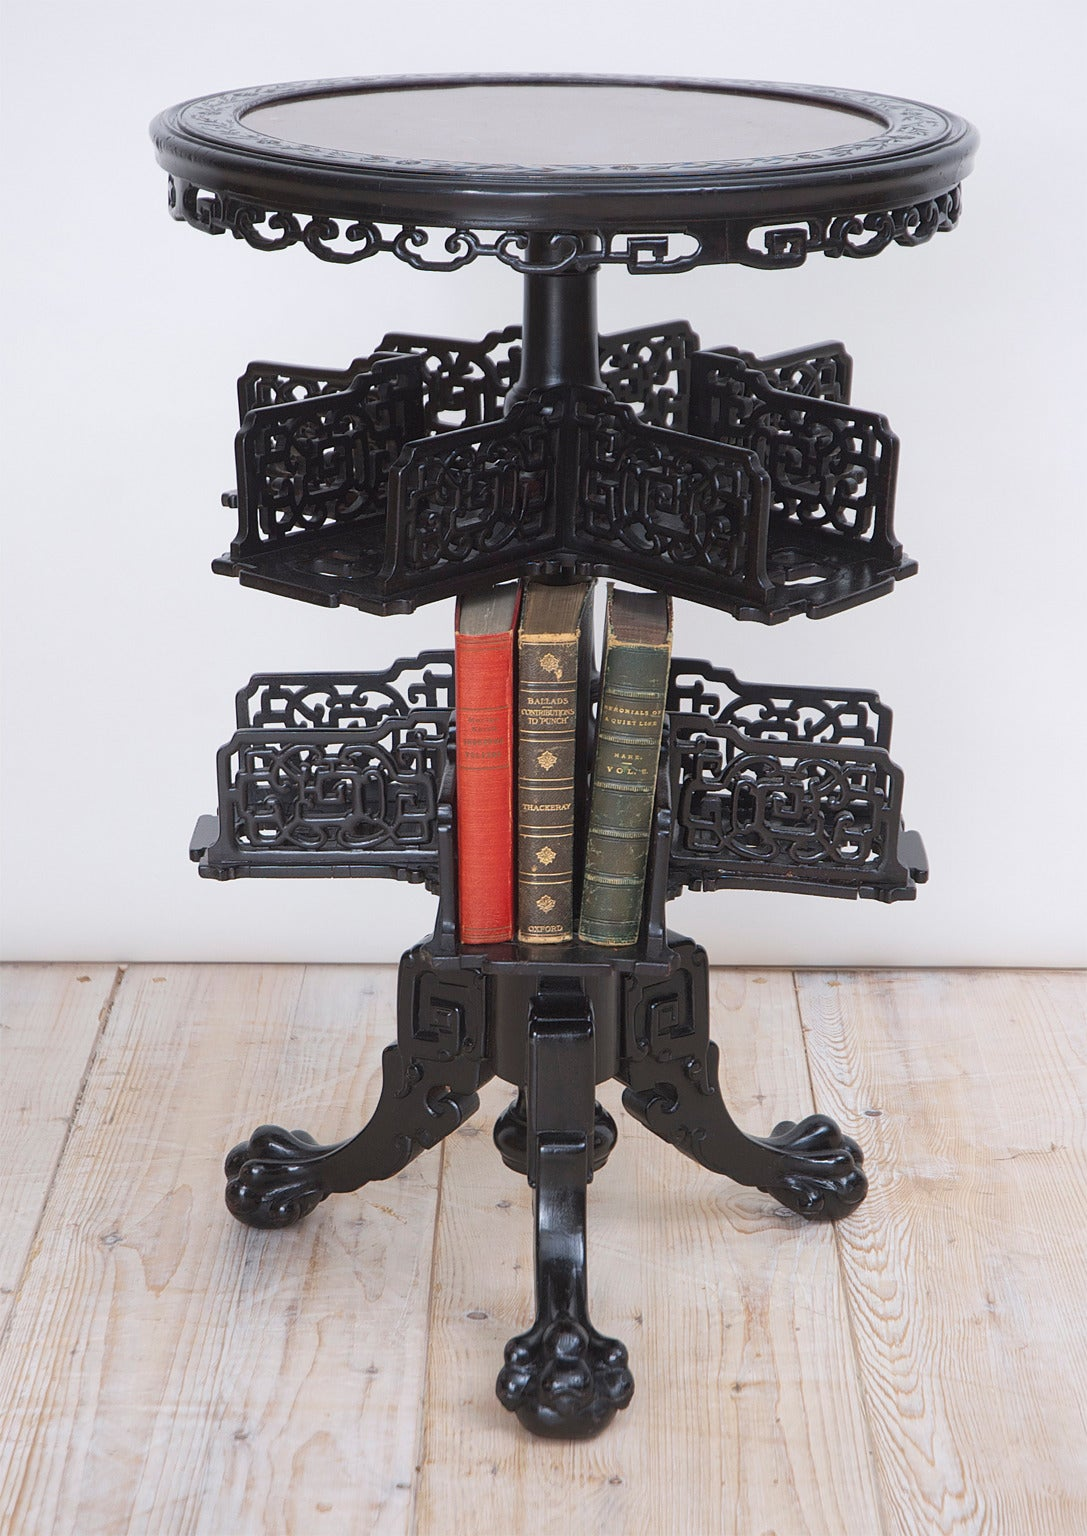 Chinese Export 19th Century Chinese Round Export Table with Revolving Bookstand For Sale